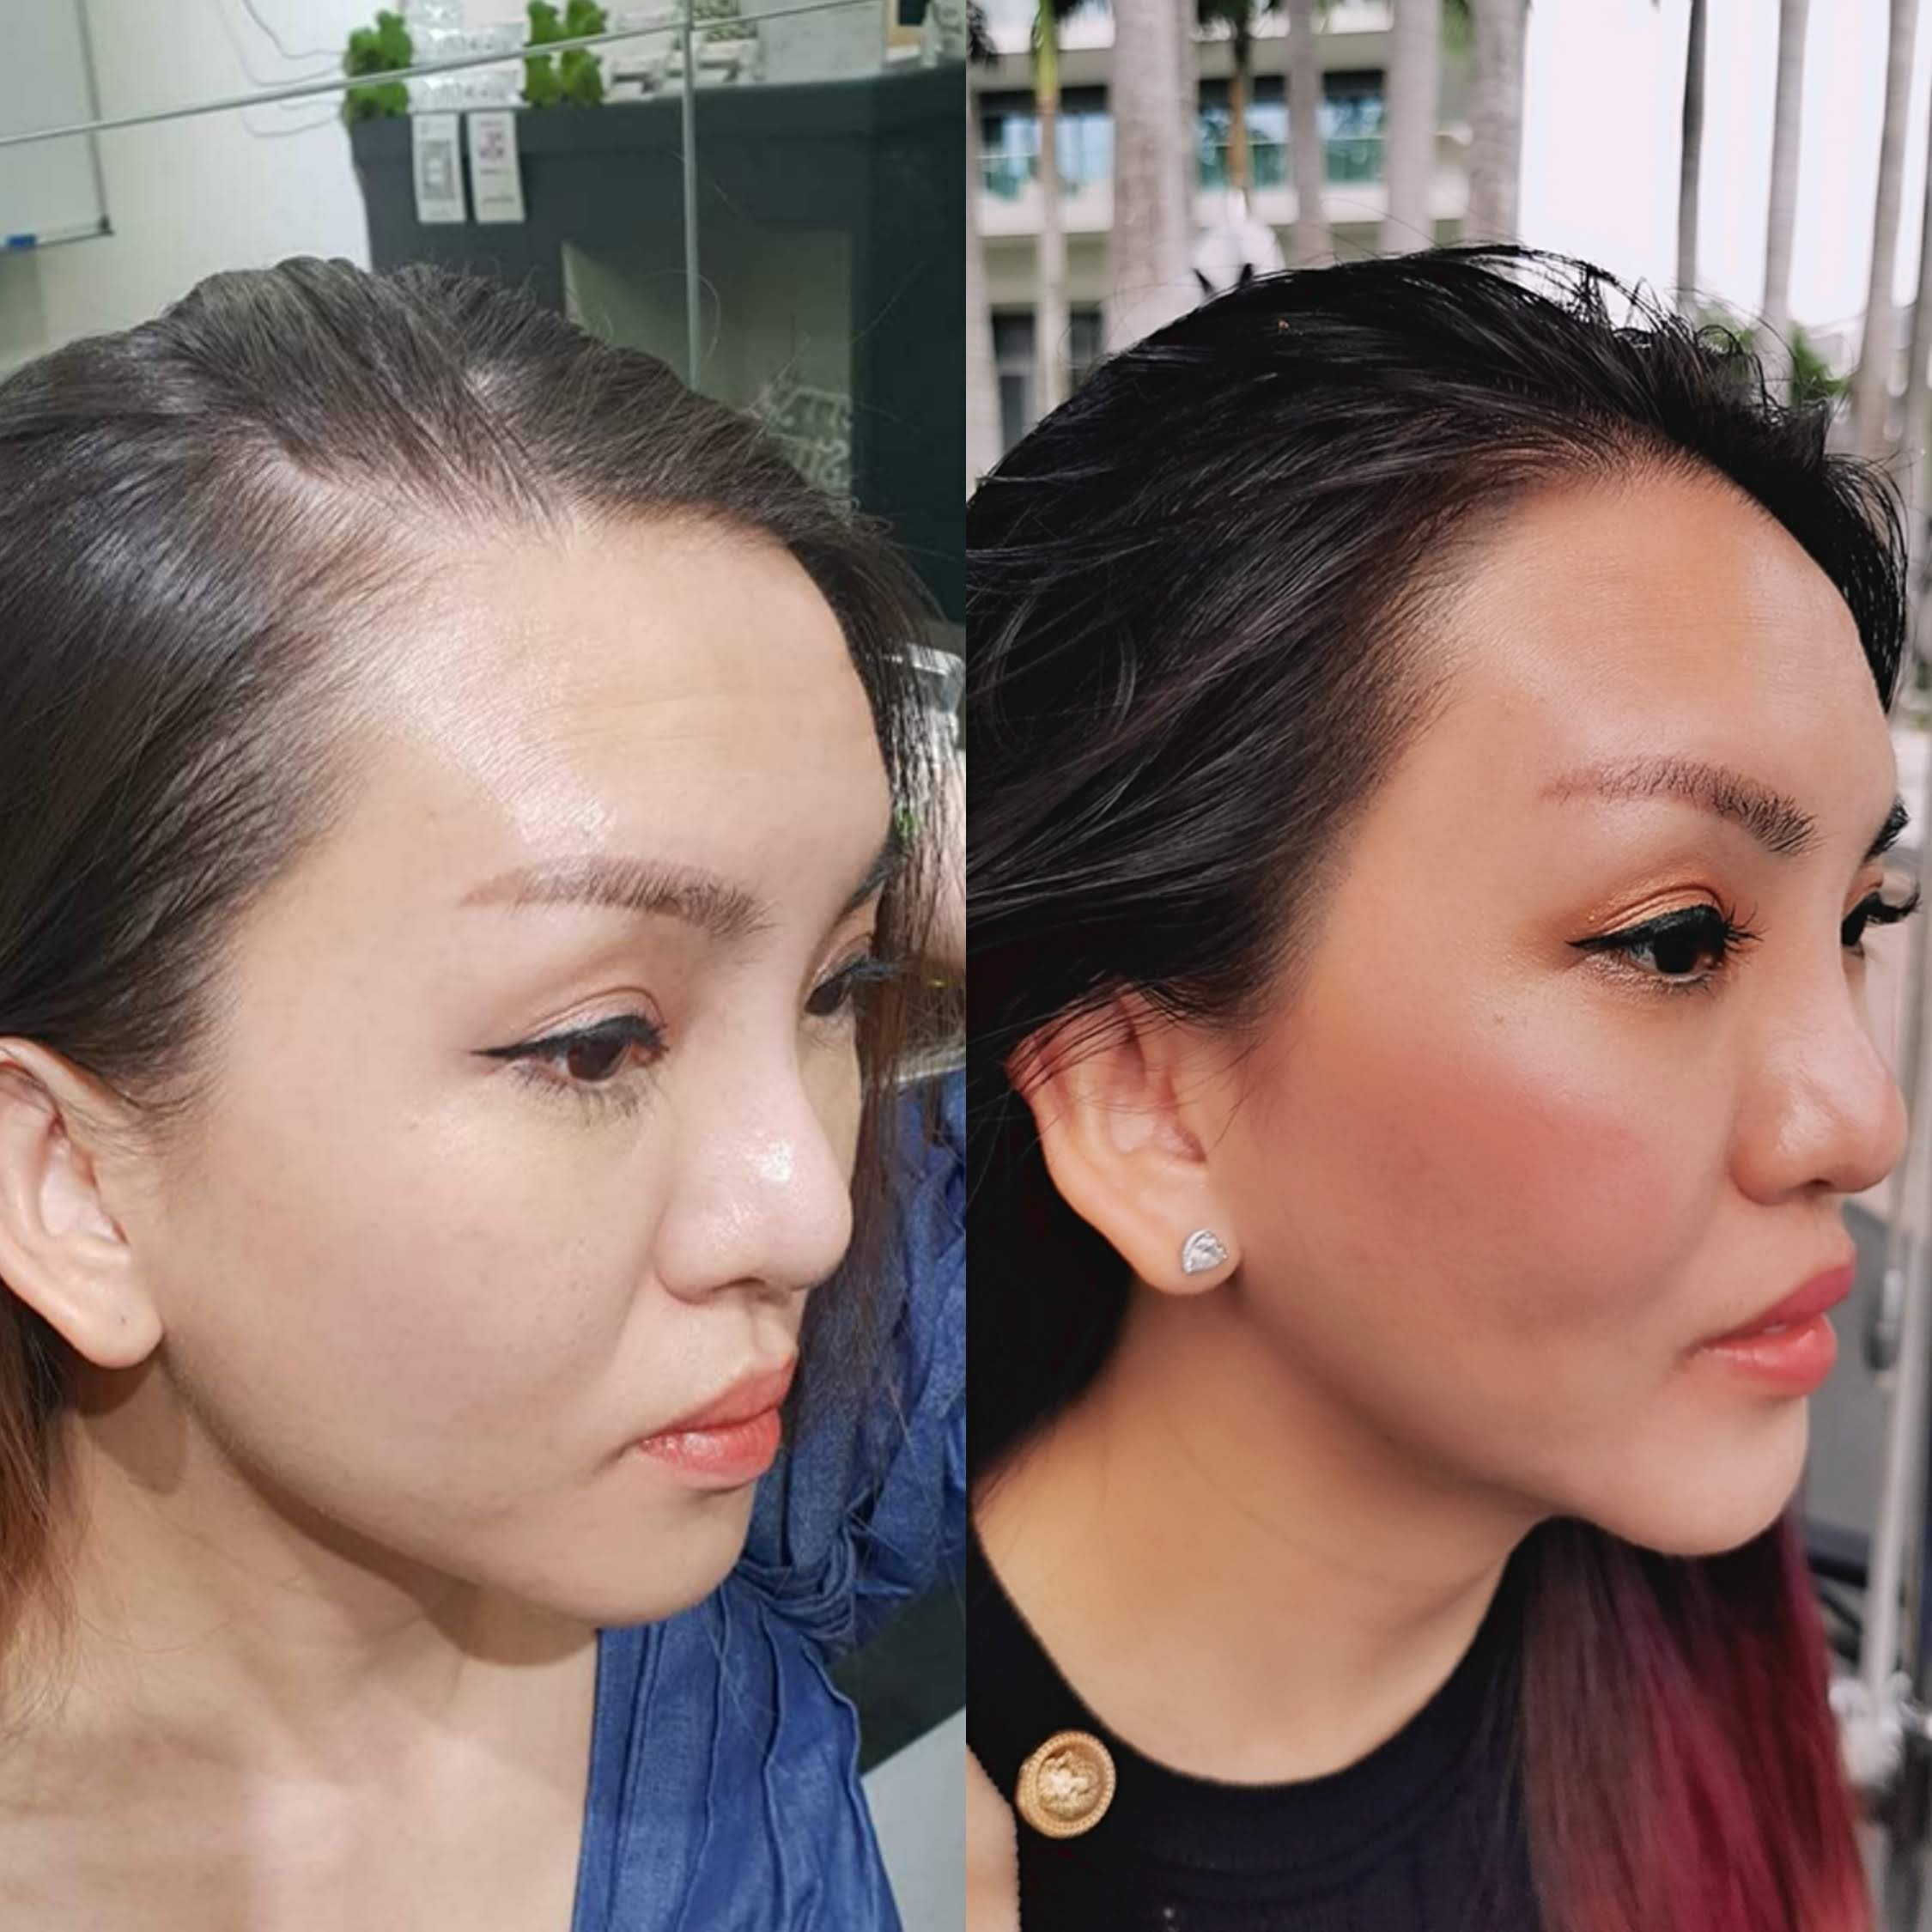 Hairline-embroidery-vs-microblading-tattoo micro pigmentation Singapore